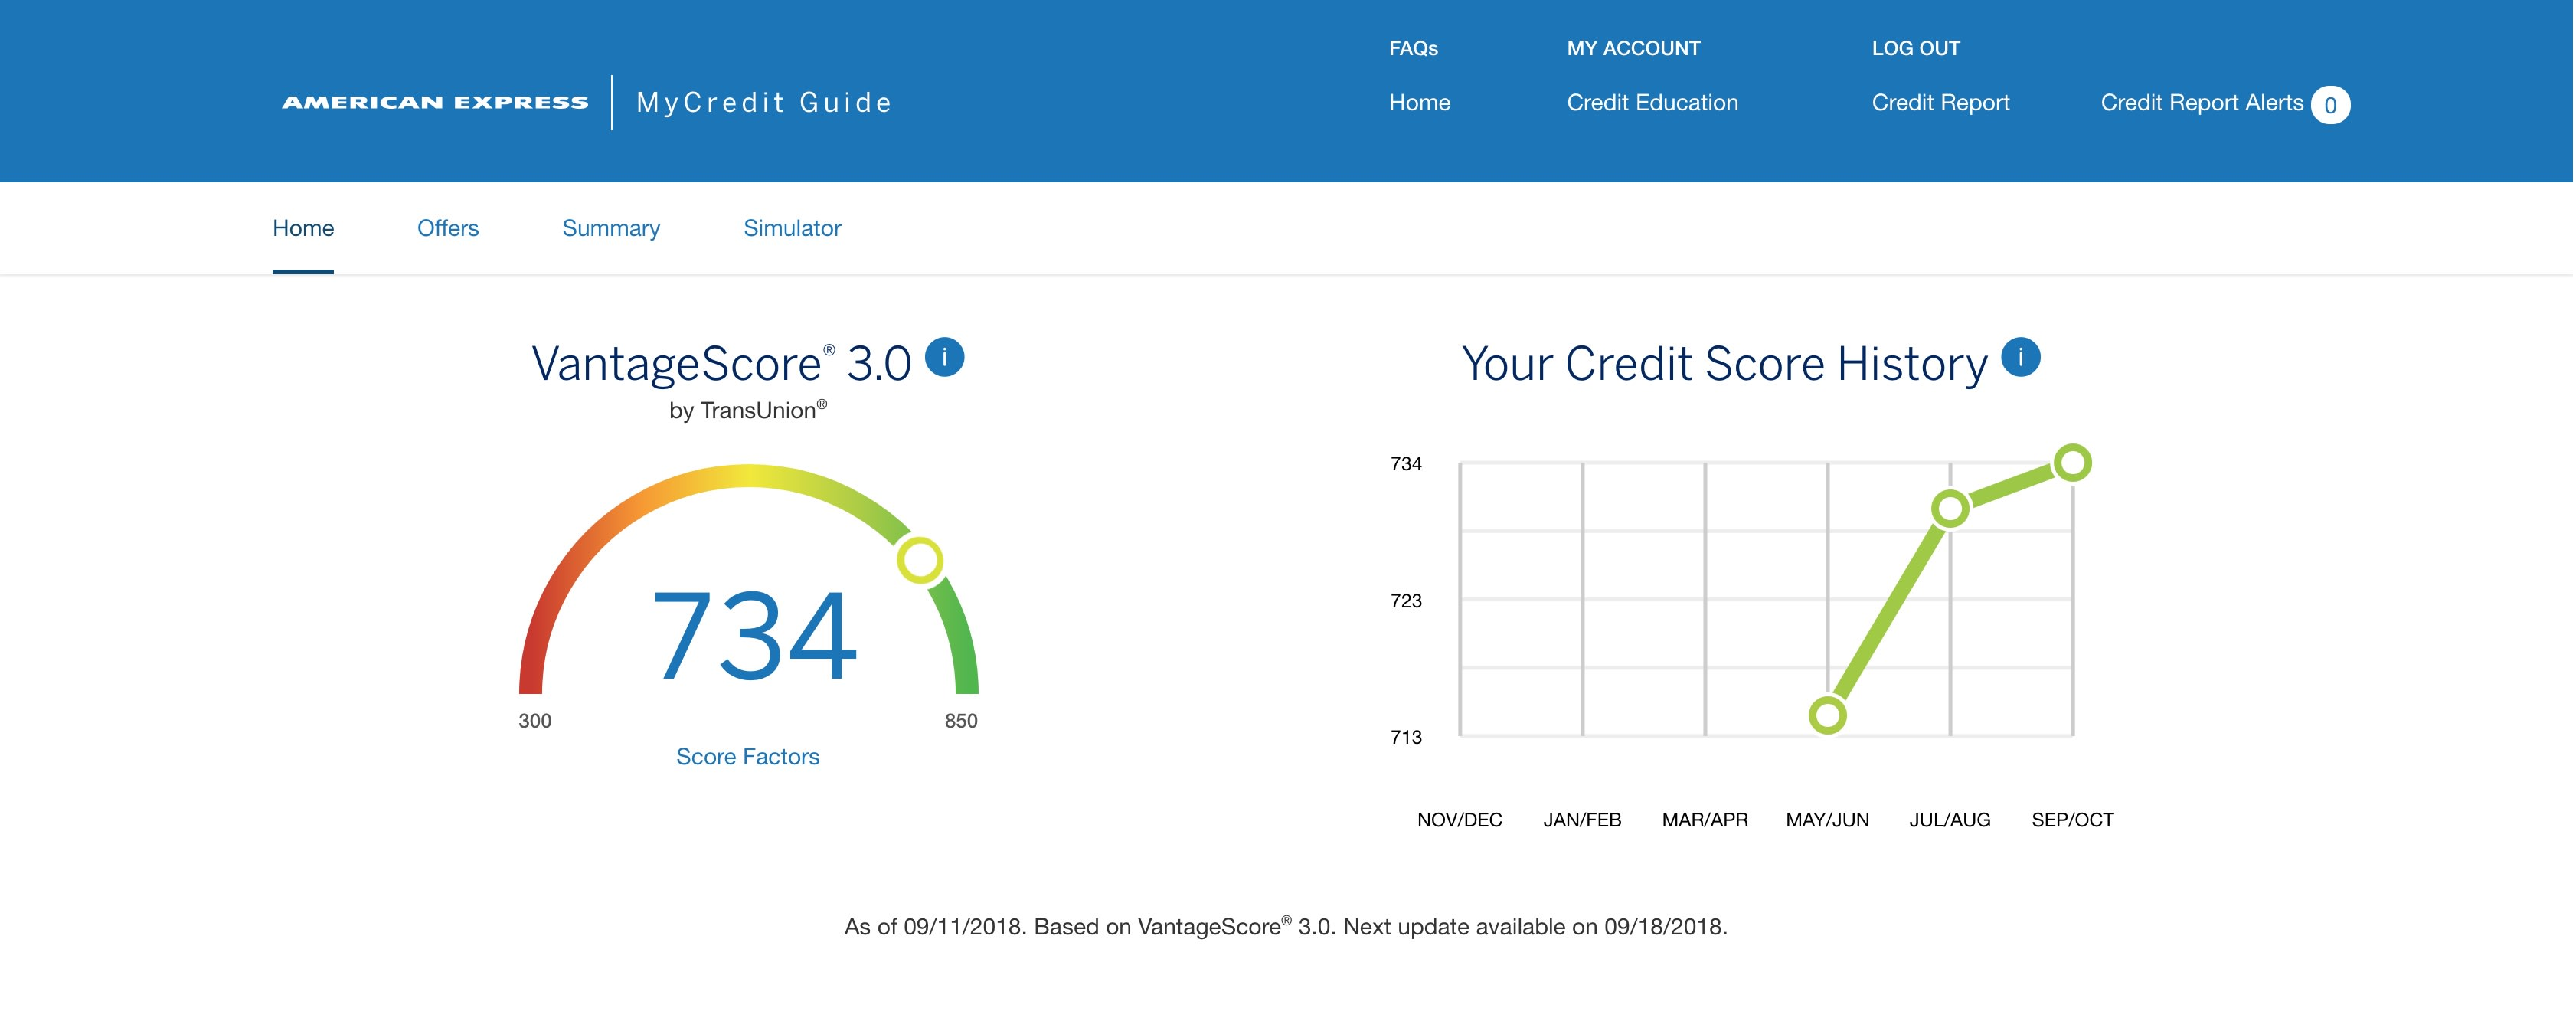 MyCredit Guide by American Express.